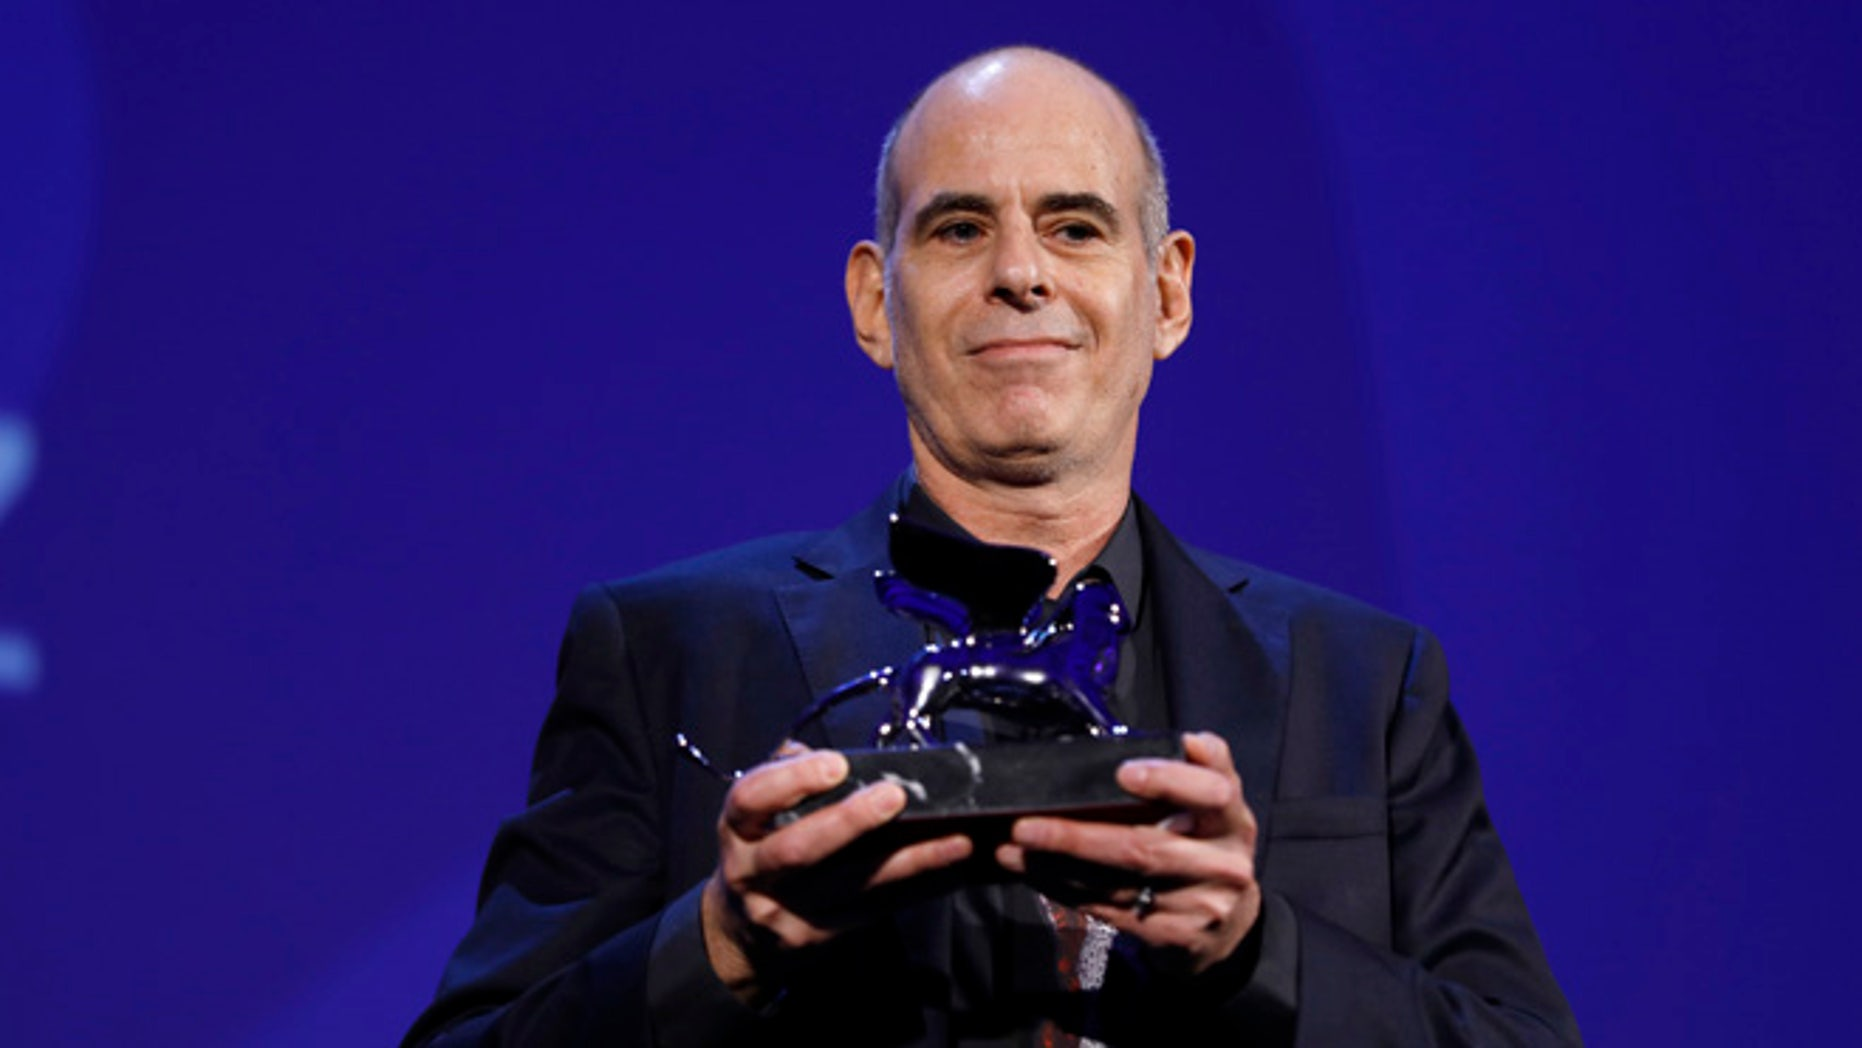 """Samuel Moaz is awarded the jury's special Silver Lion prize for """"Foxtrot"""" at the 74th Venice Film Festival."""